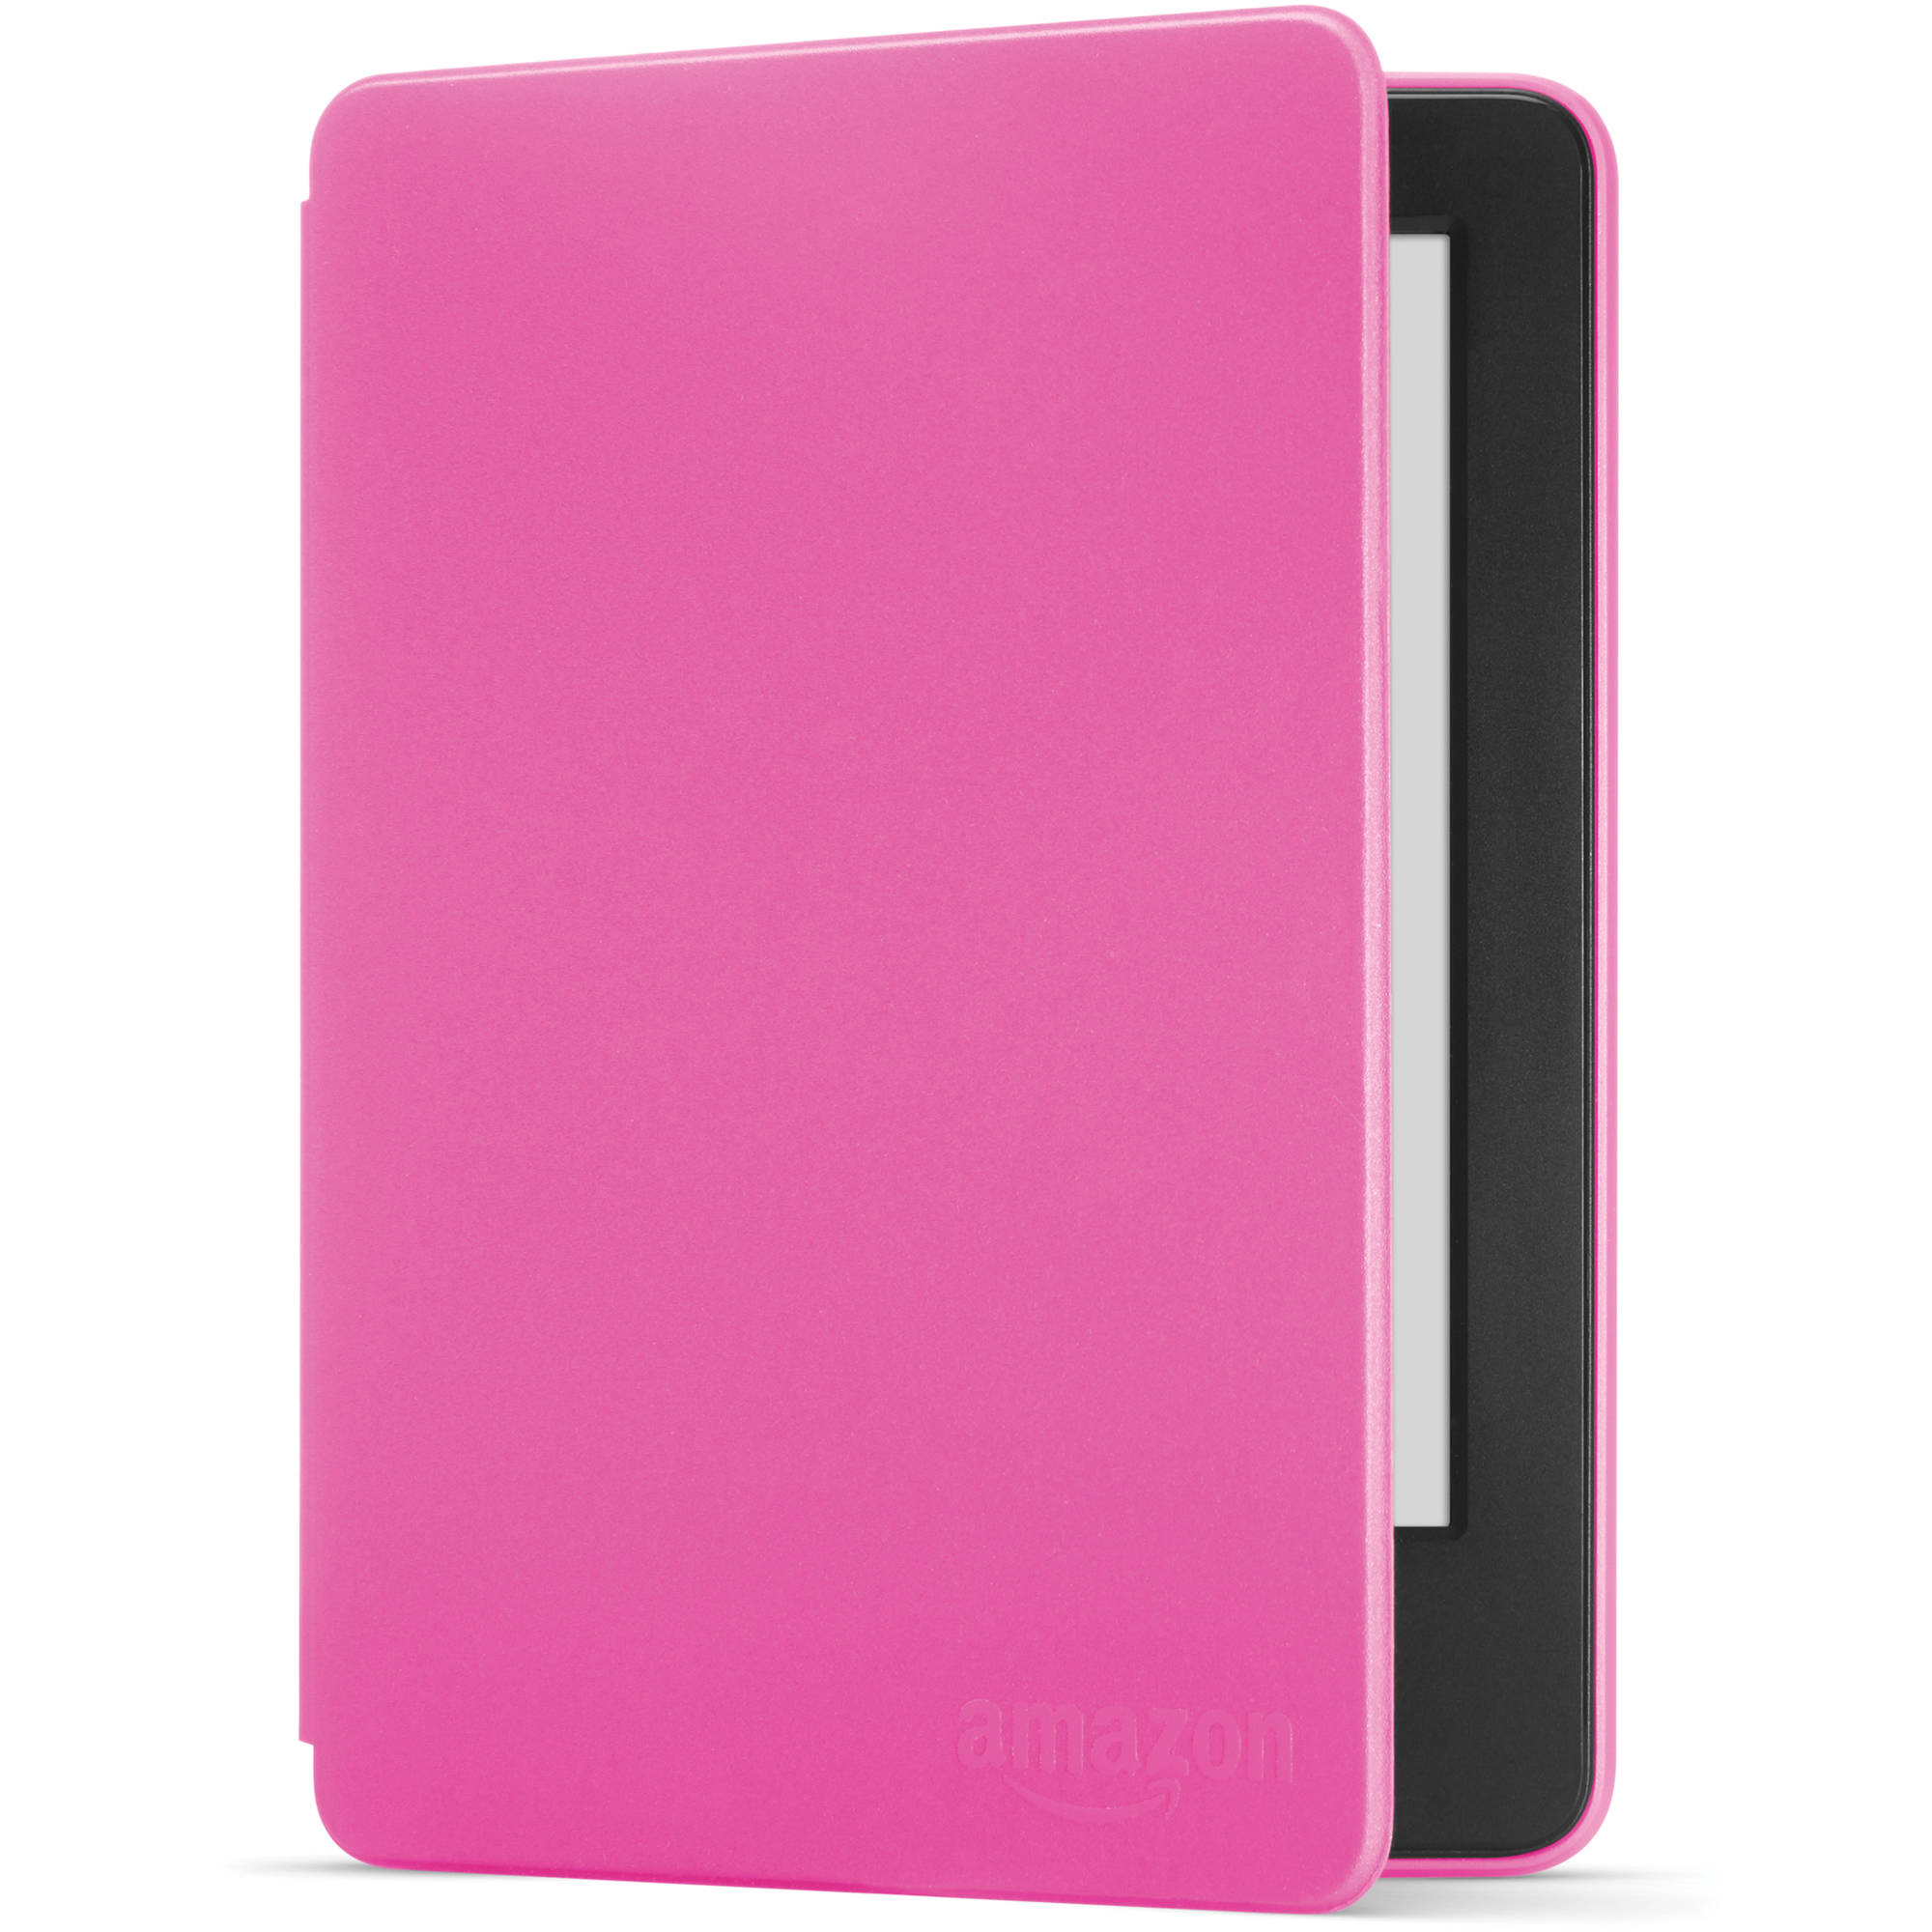 Protective Cover for Kindle will not fit previous generation Kindle devices 7th Generation Purple